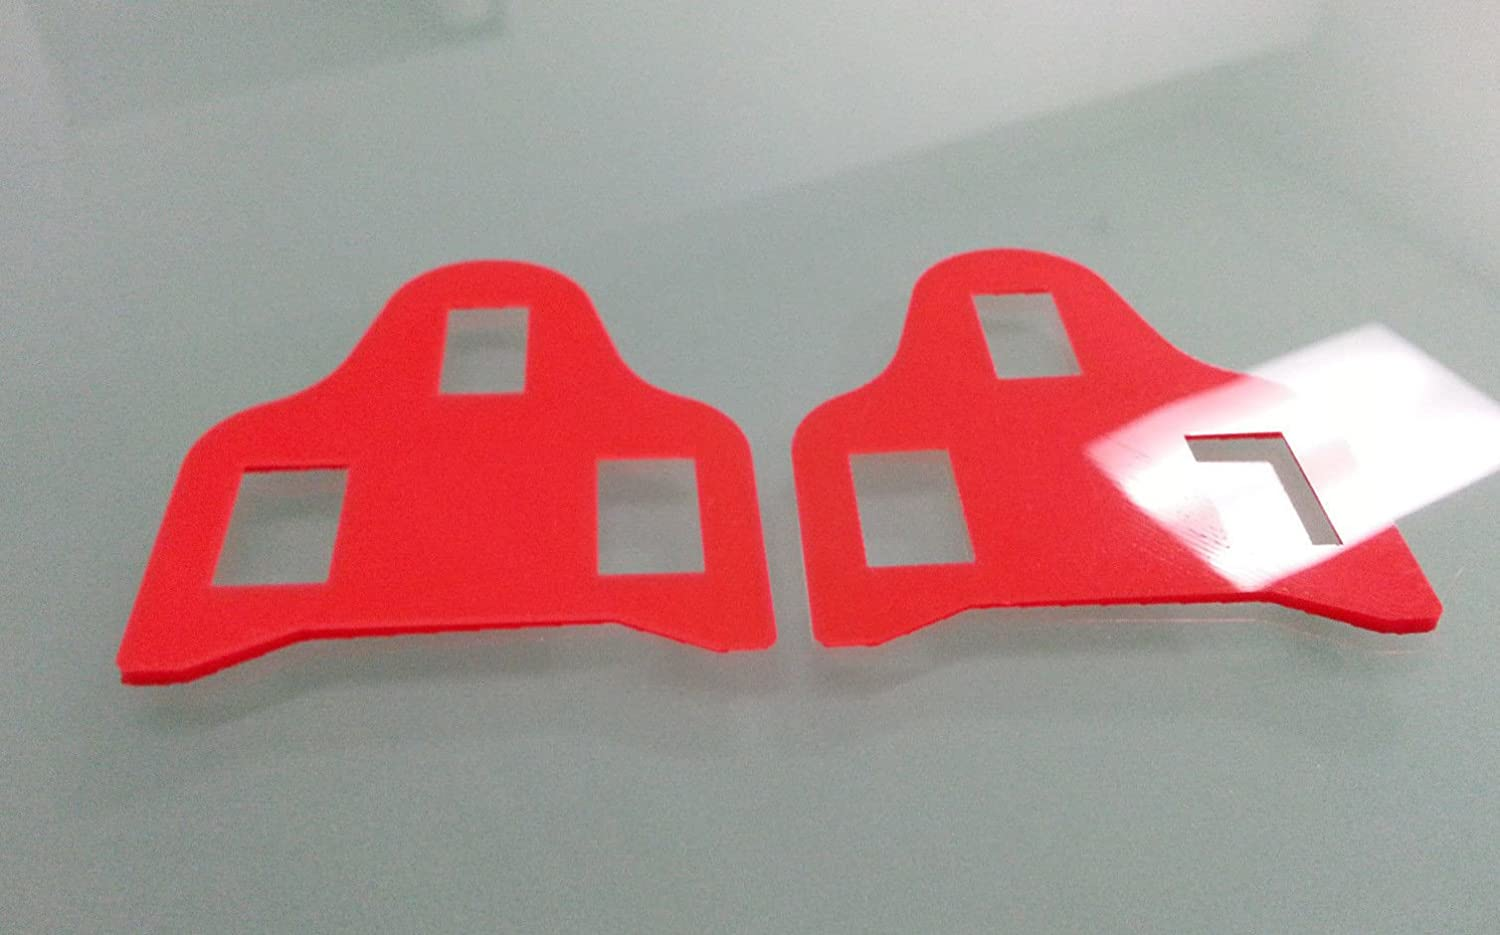 Leg Length discrepancy for SHIMANO SPD-SL ROAD pedal style cleat spacer shim